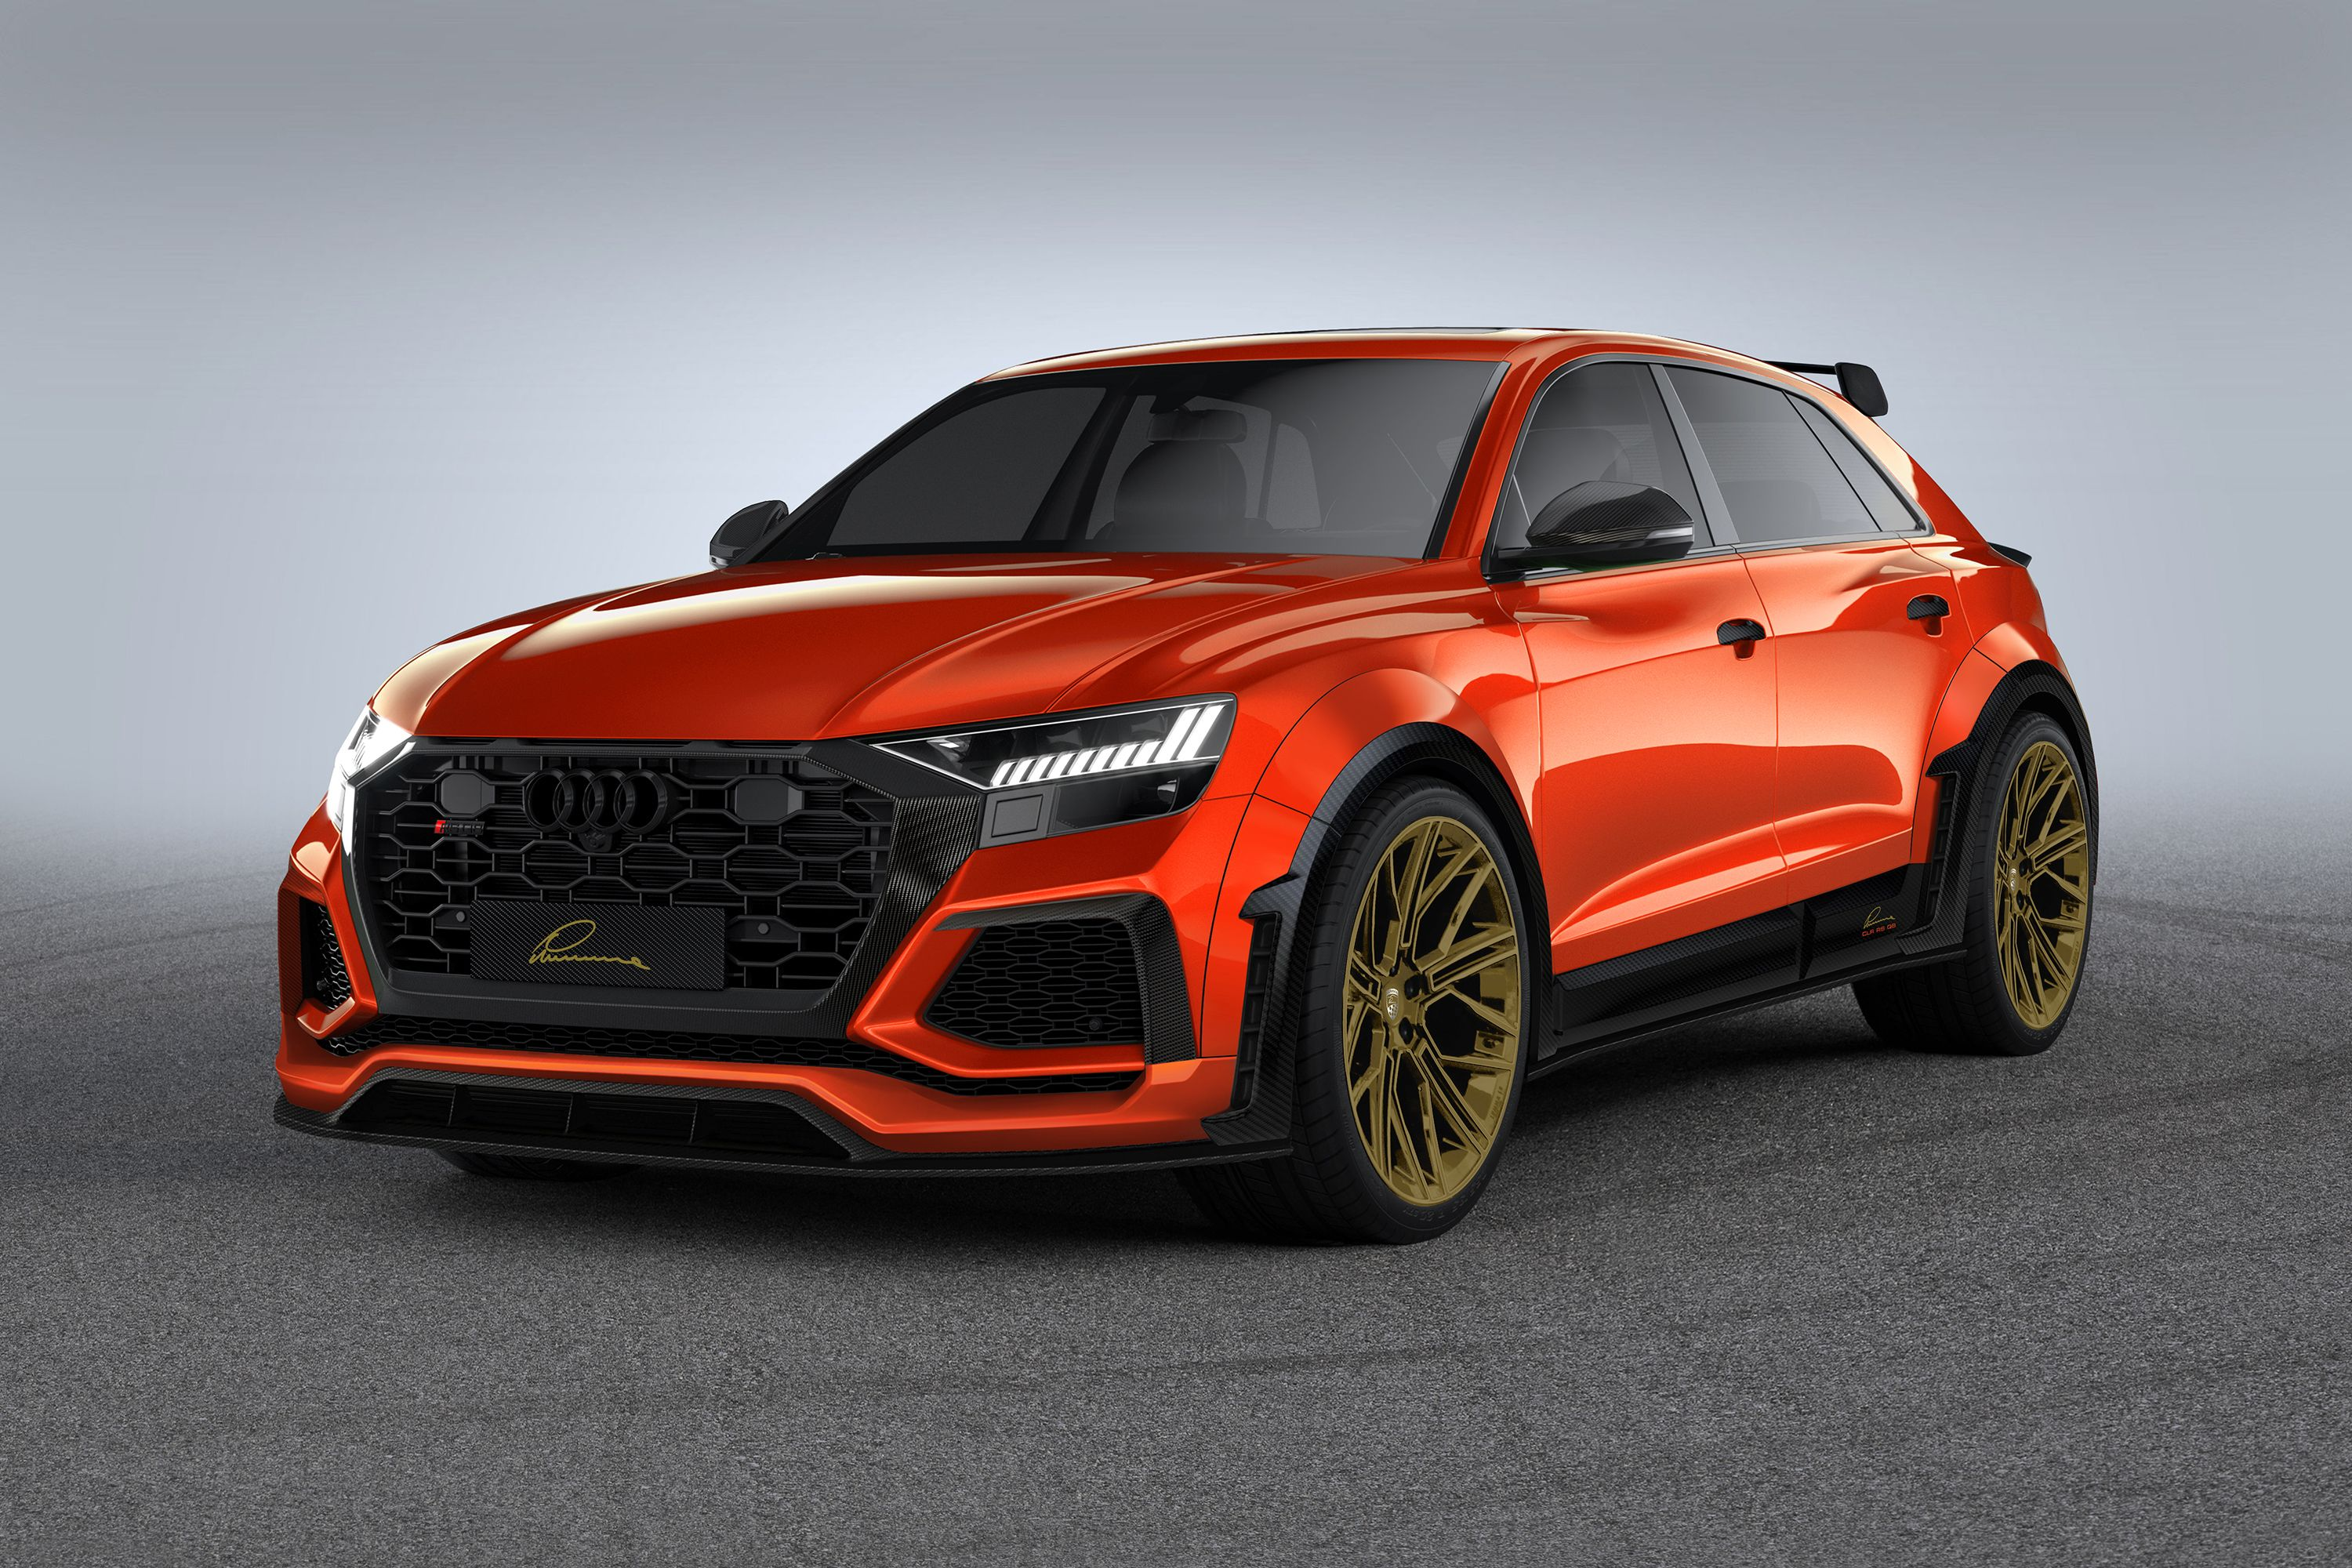 2020 Audi Rs Q8 By Lumma Design Top Speed In 2020 Audi Rs Suv Models Suv